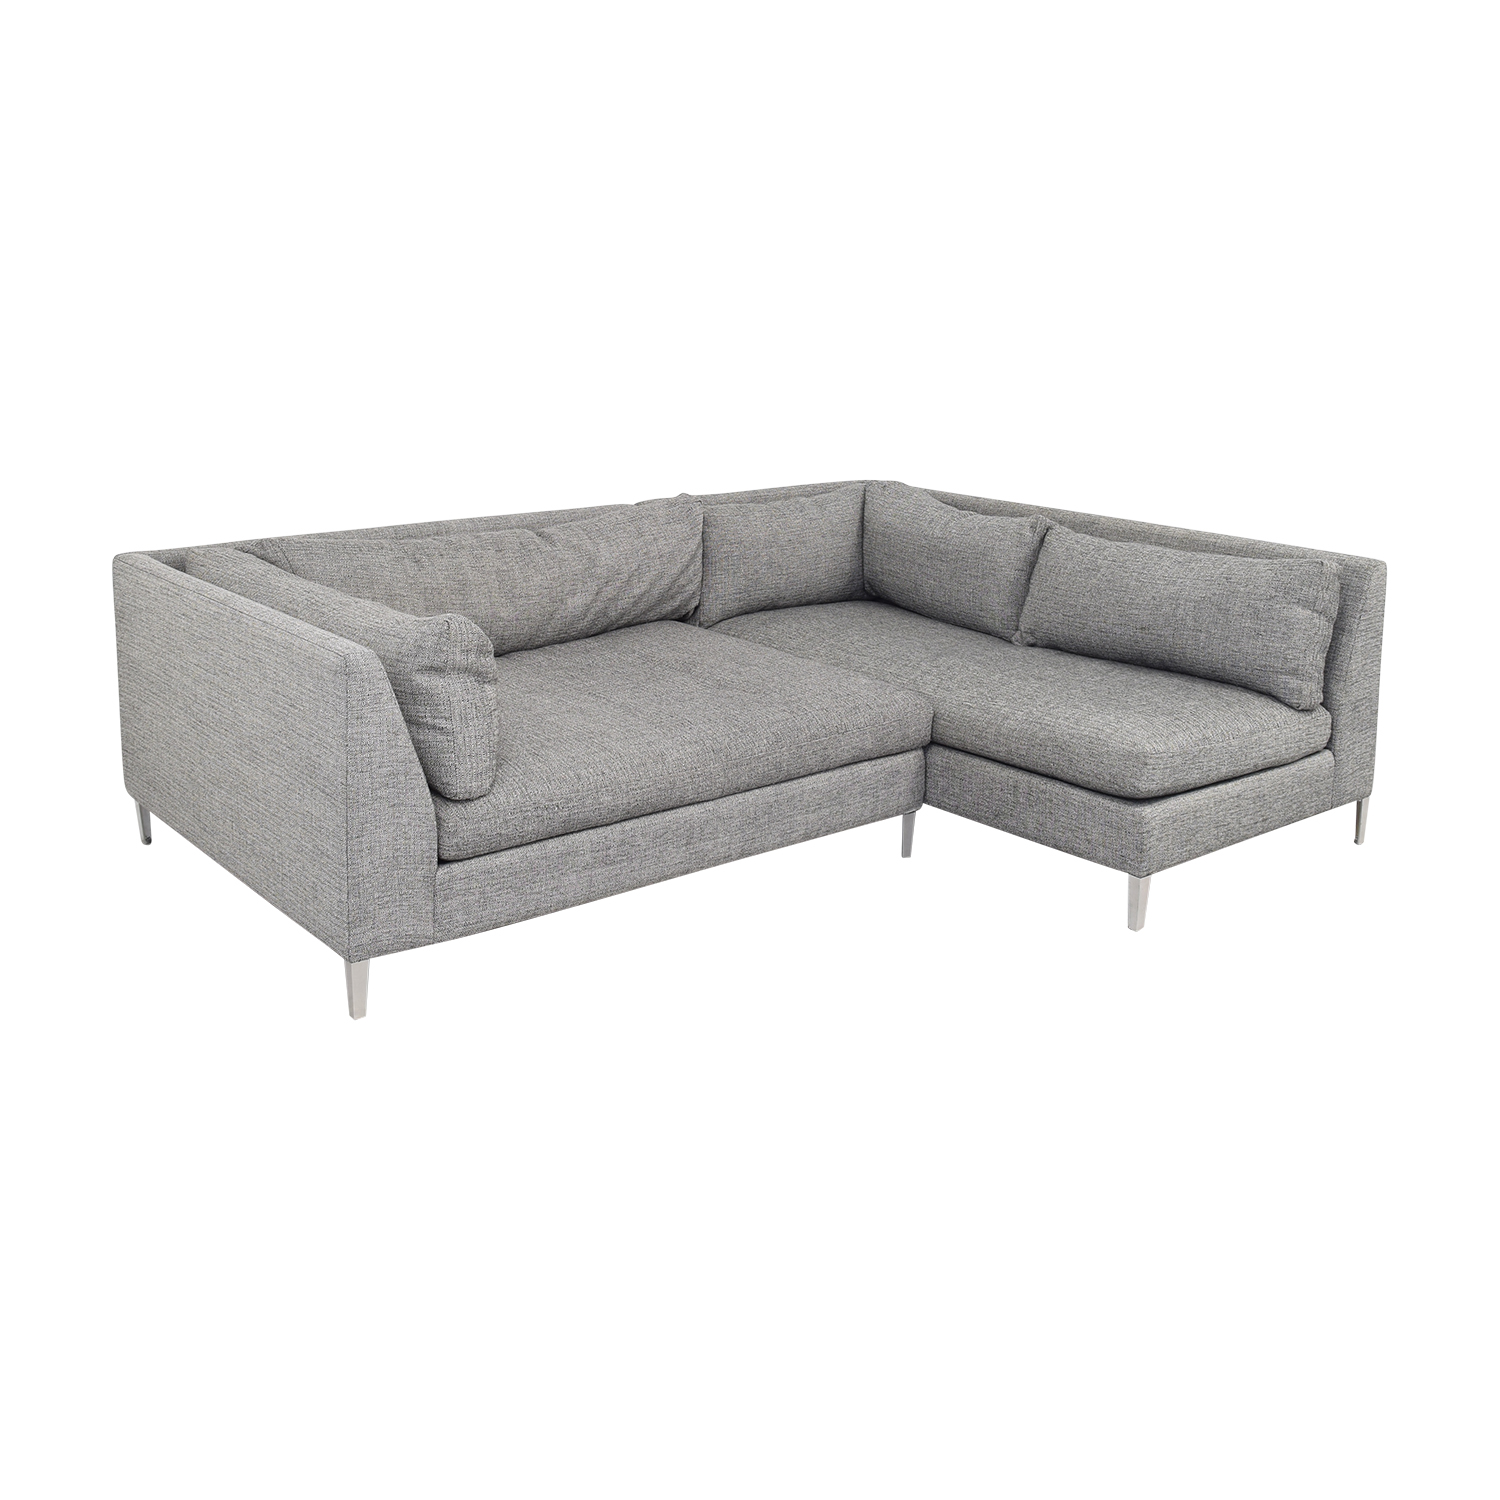 CB2 CB2 Two Piece Sectional Sofa with Chaise coupon